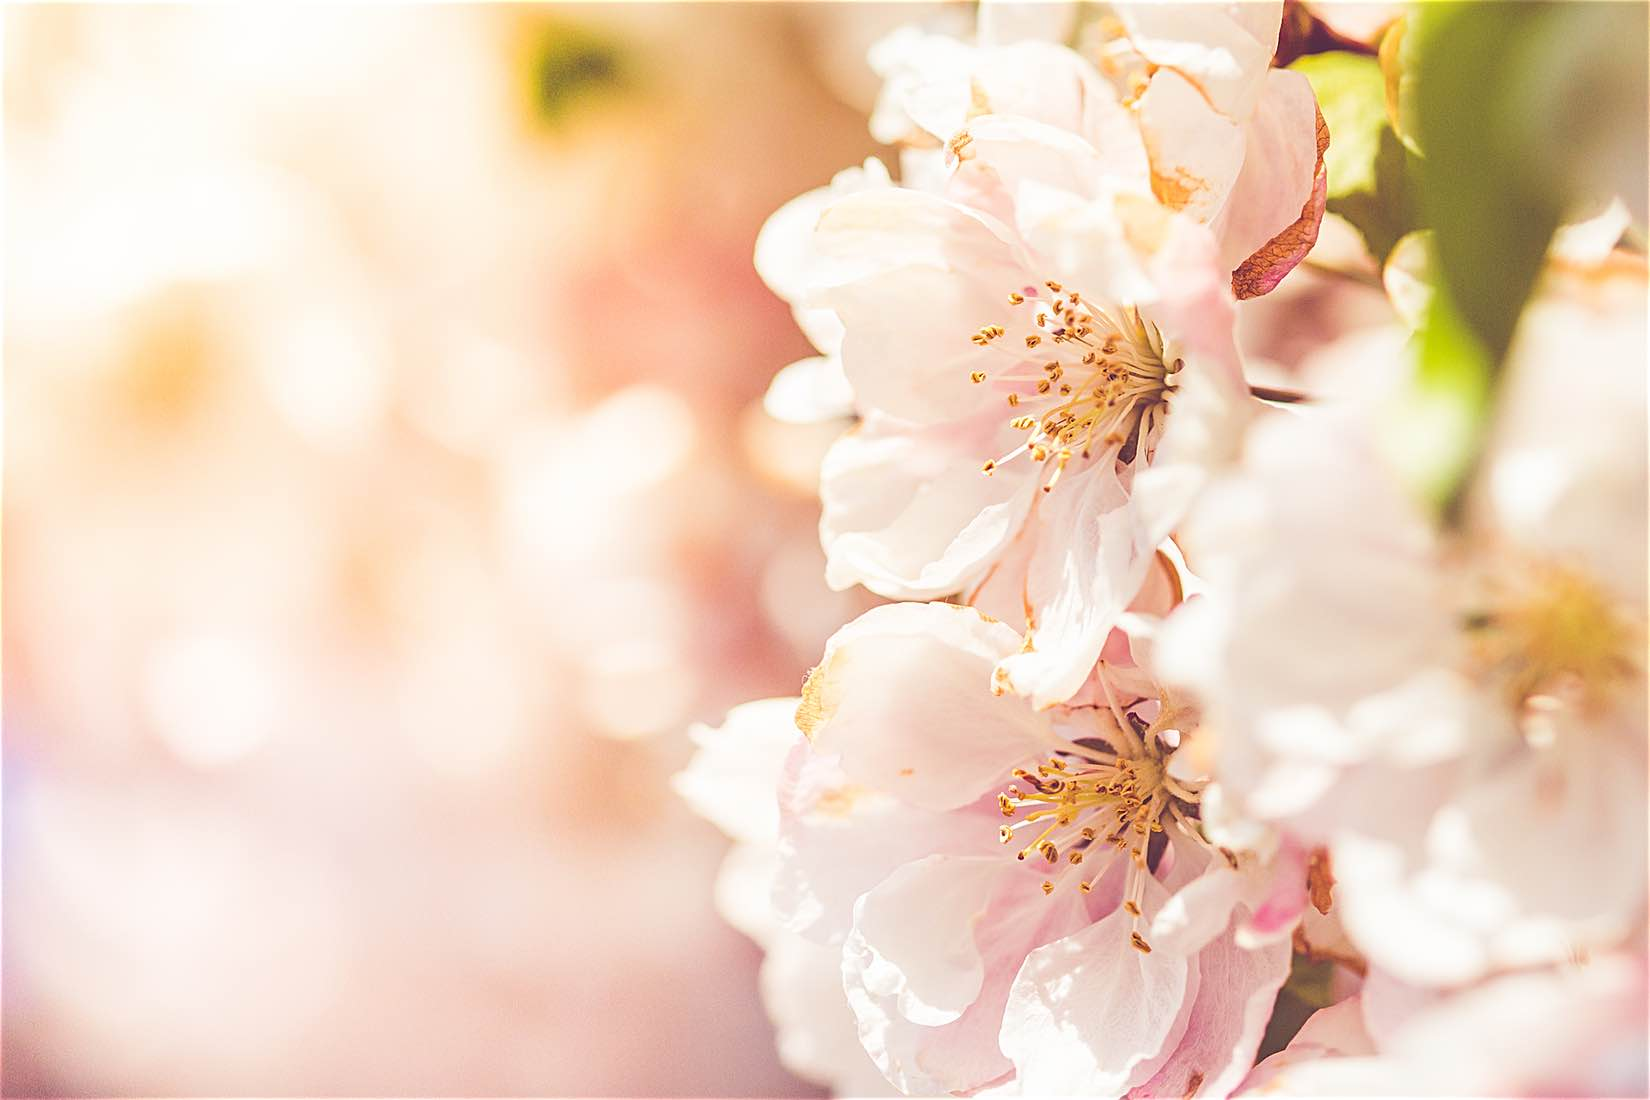 Wonderful Spring Blooms Free Stock Photo Download.